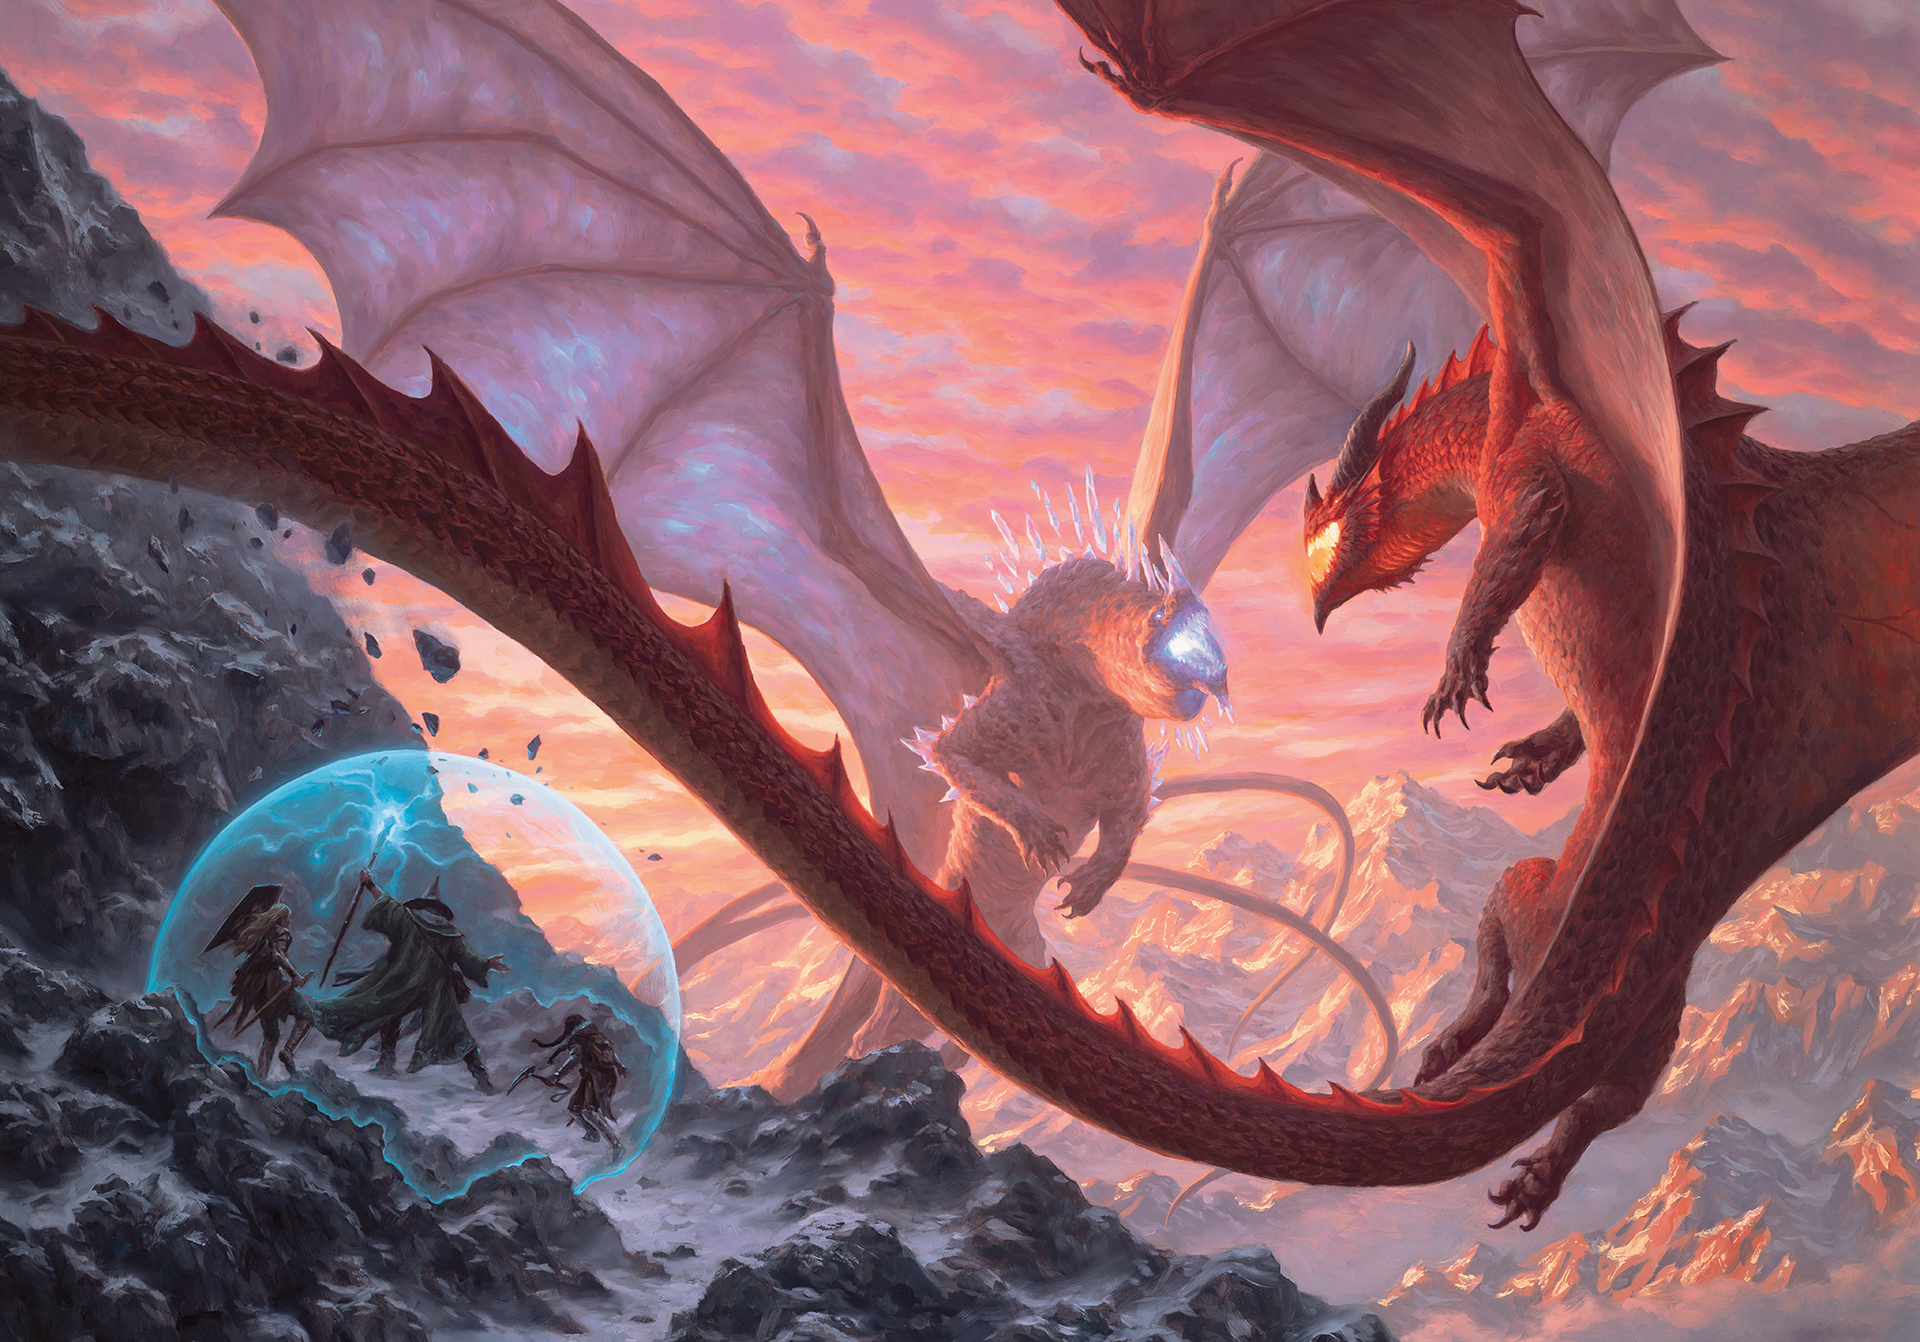 Fizban the Fabulous protects a group of innocents as a crystal dragon and a red dragon clash in the sky.